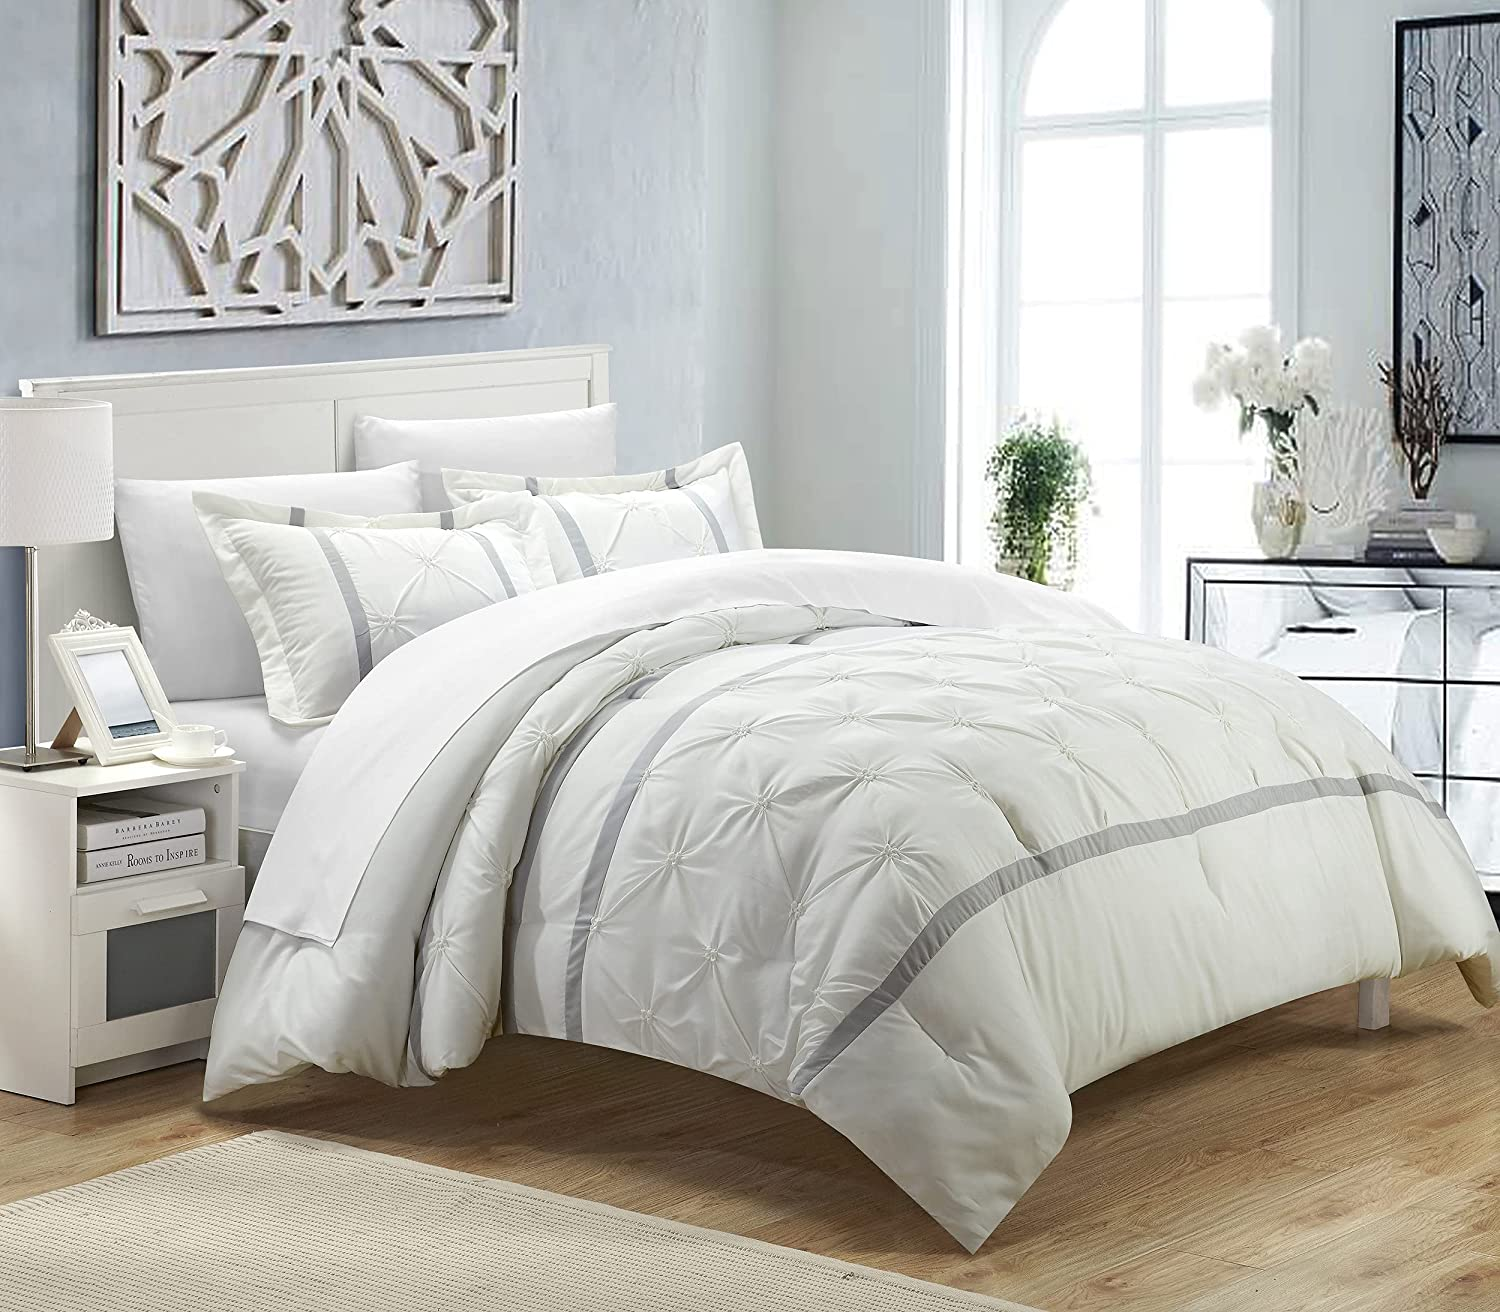 Chic Home Fort Worth Mall 3 Piece Veronica Pinch Super sale period limited Pintuck Duvet Pleat Cover Set